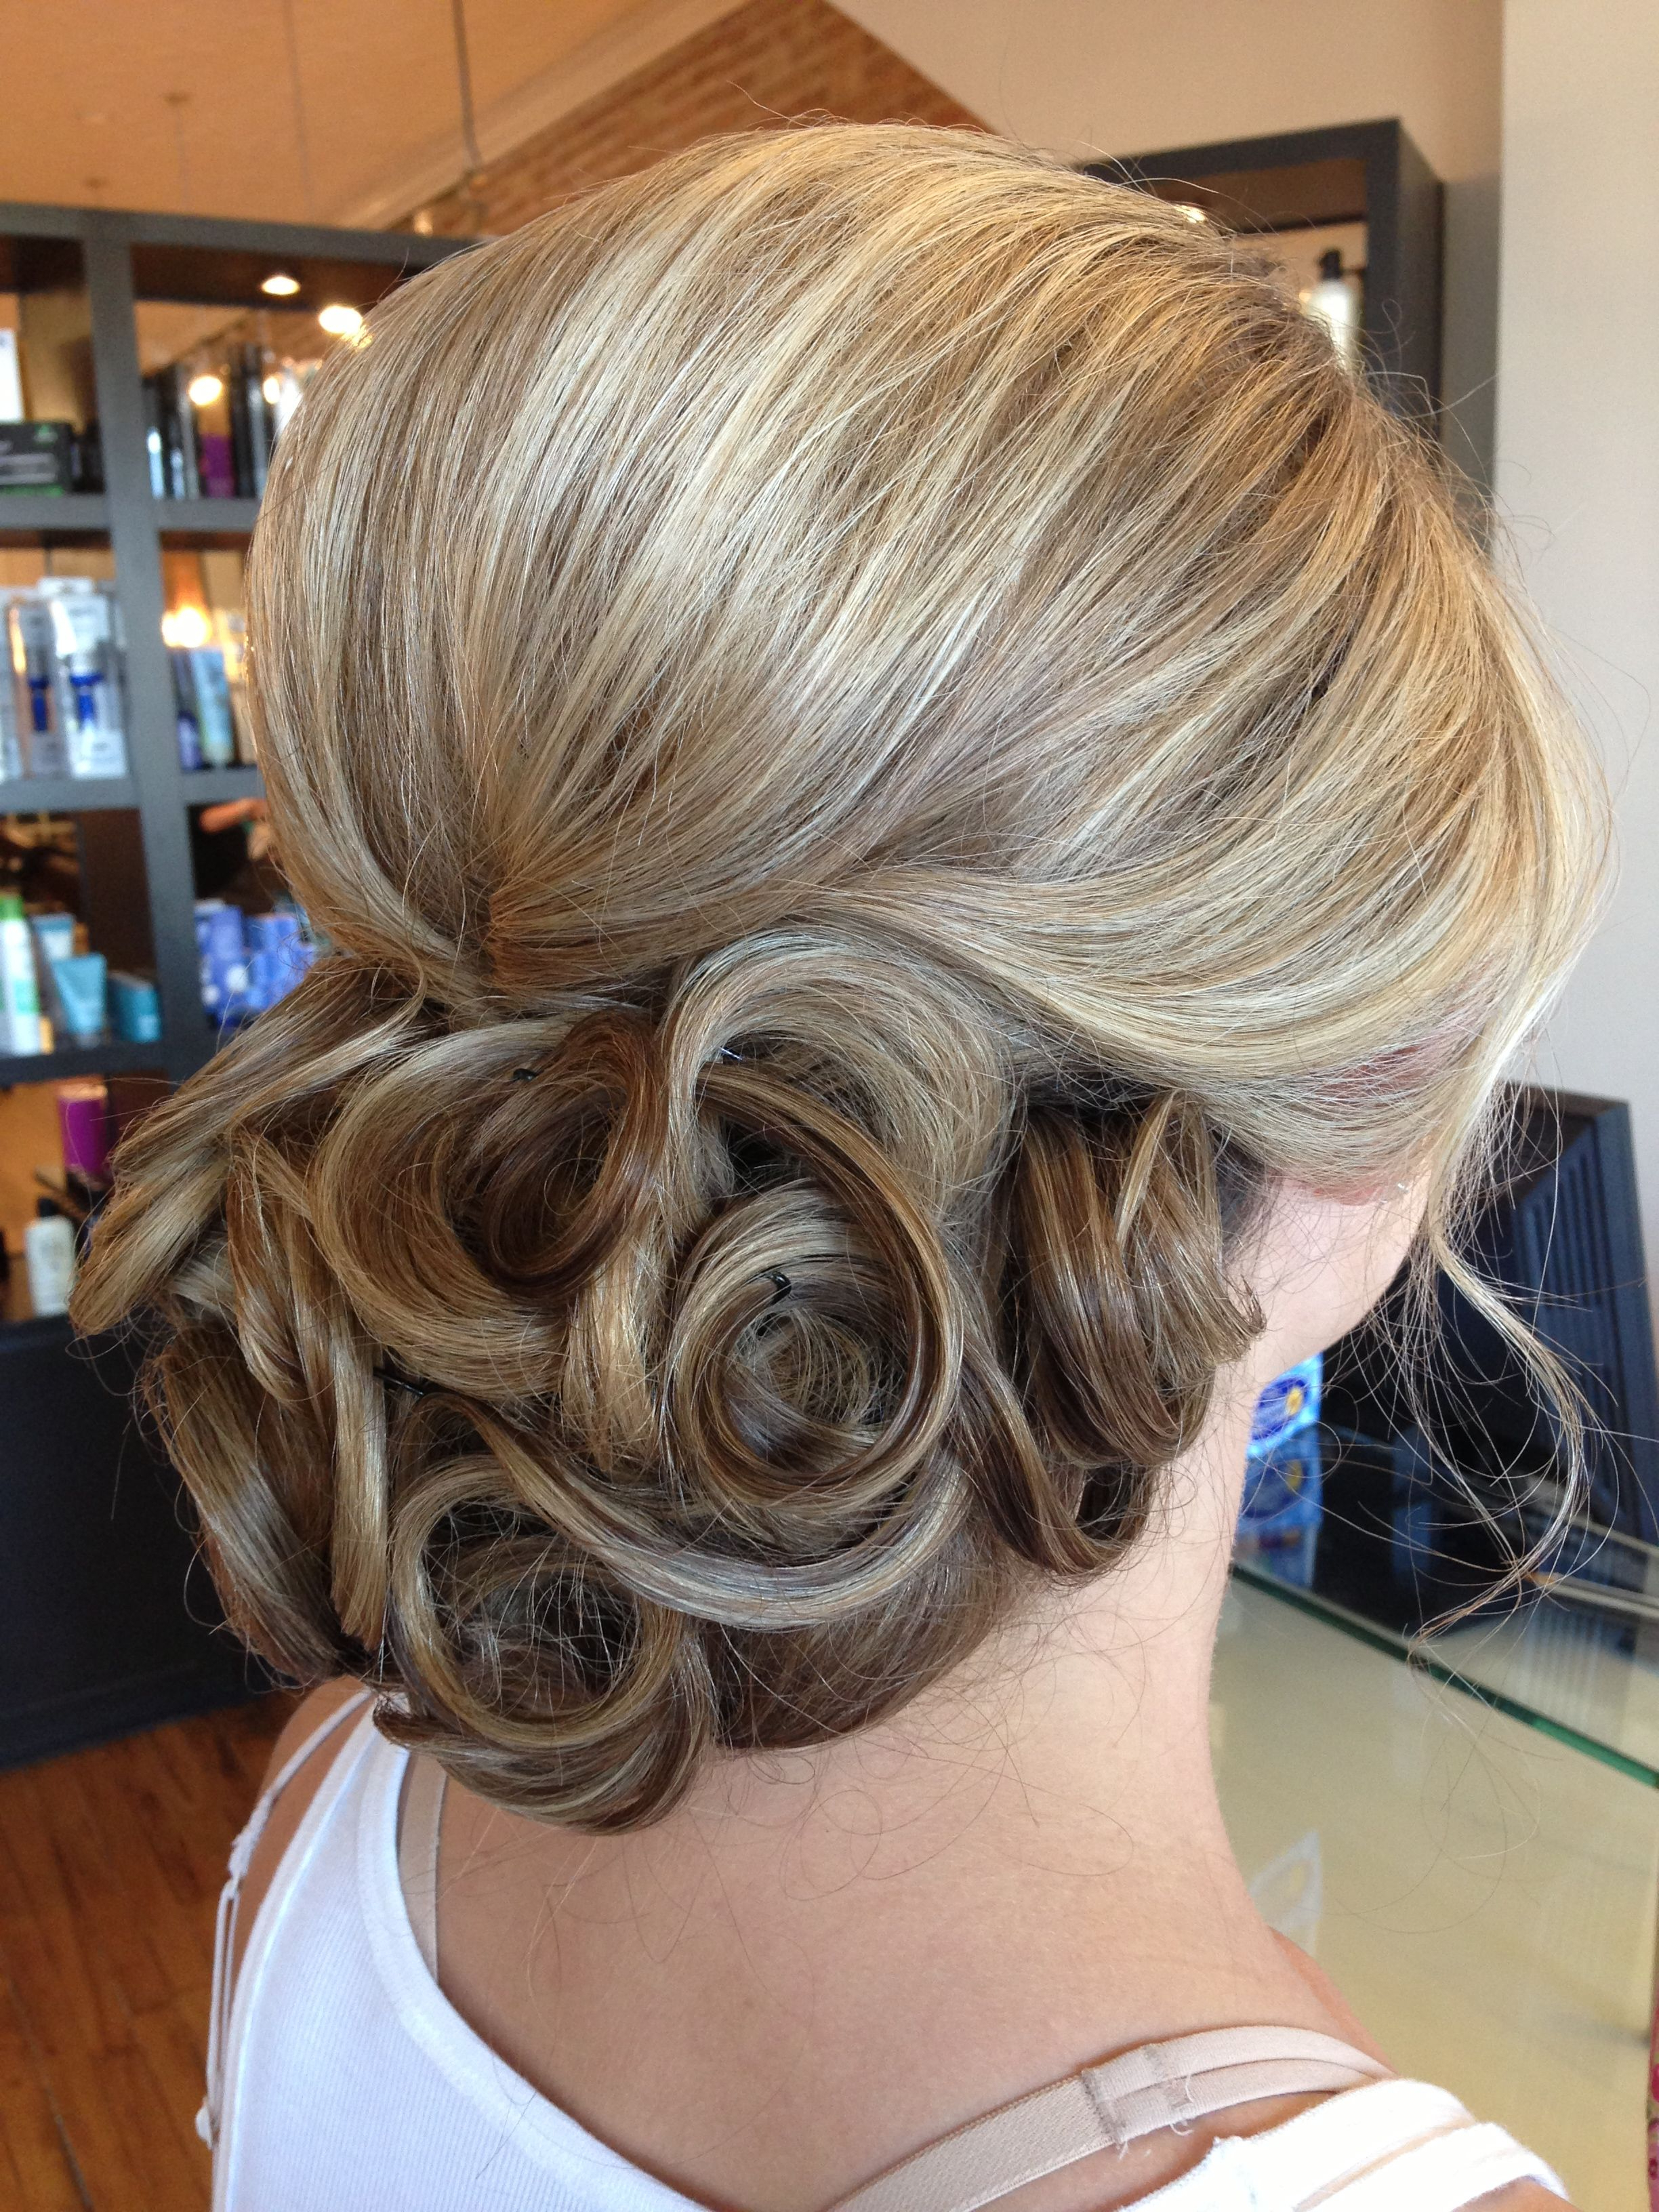 Down Hairstyles Throughout Recent Swirl Bun Updo Hairstyles (Gallery 2 of 20)